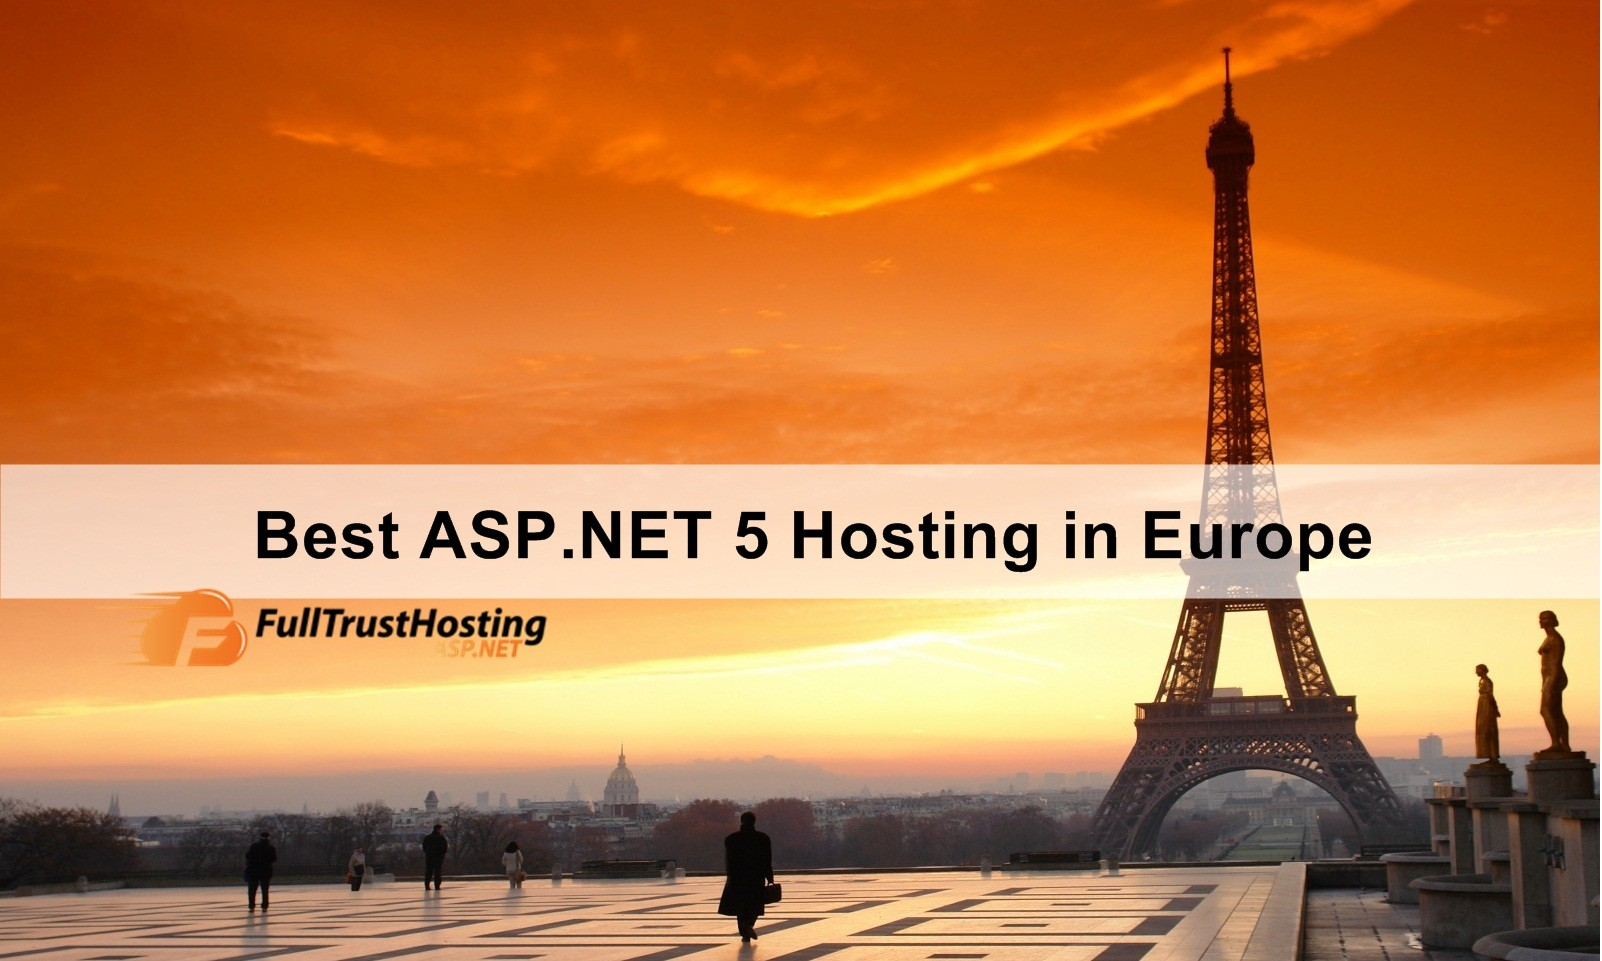 Best ASP.NET 5 Hosting in Europe